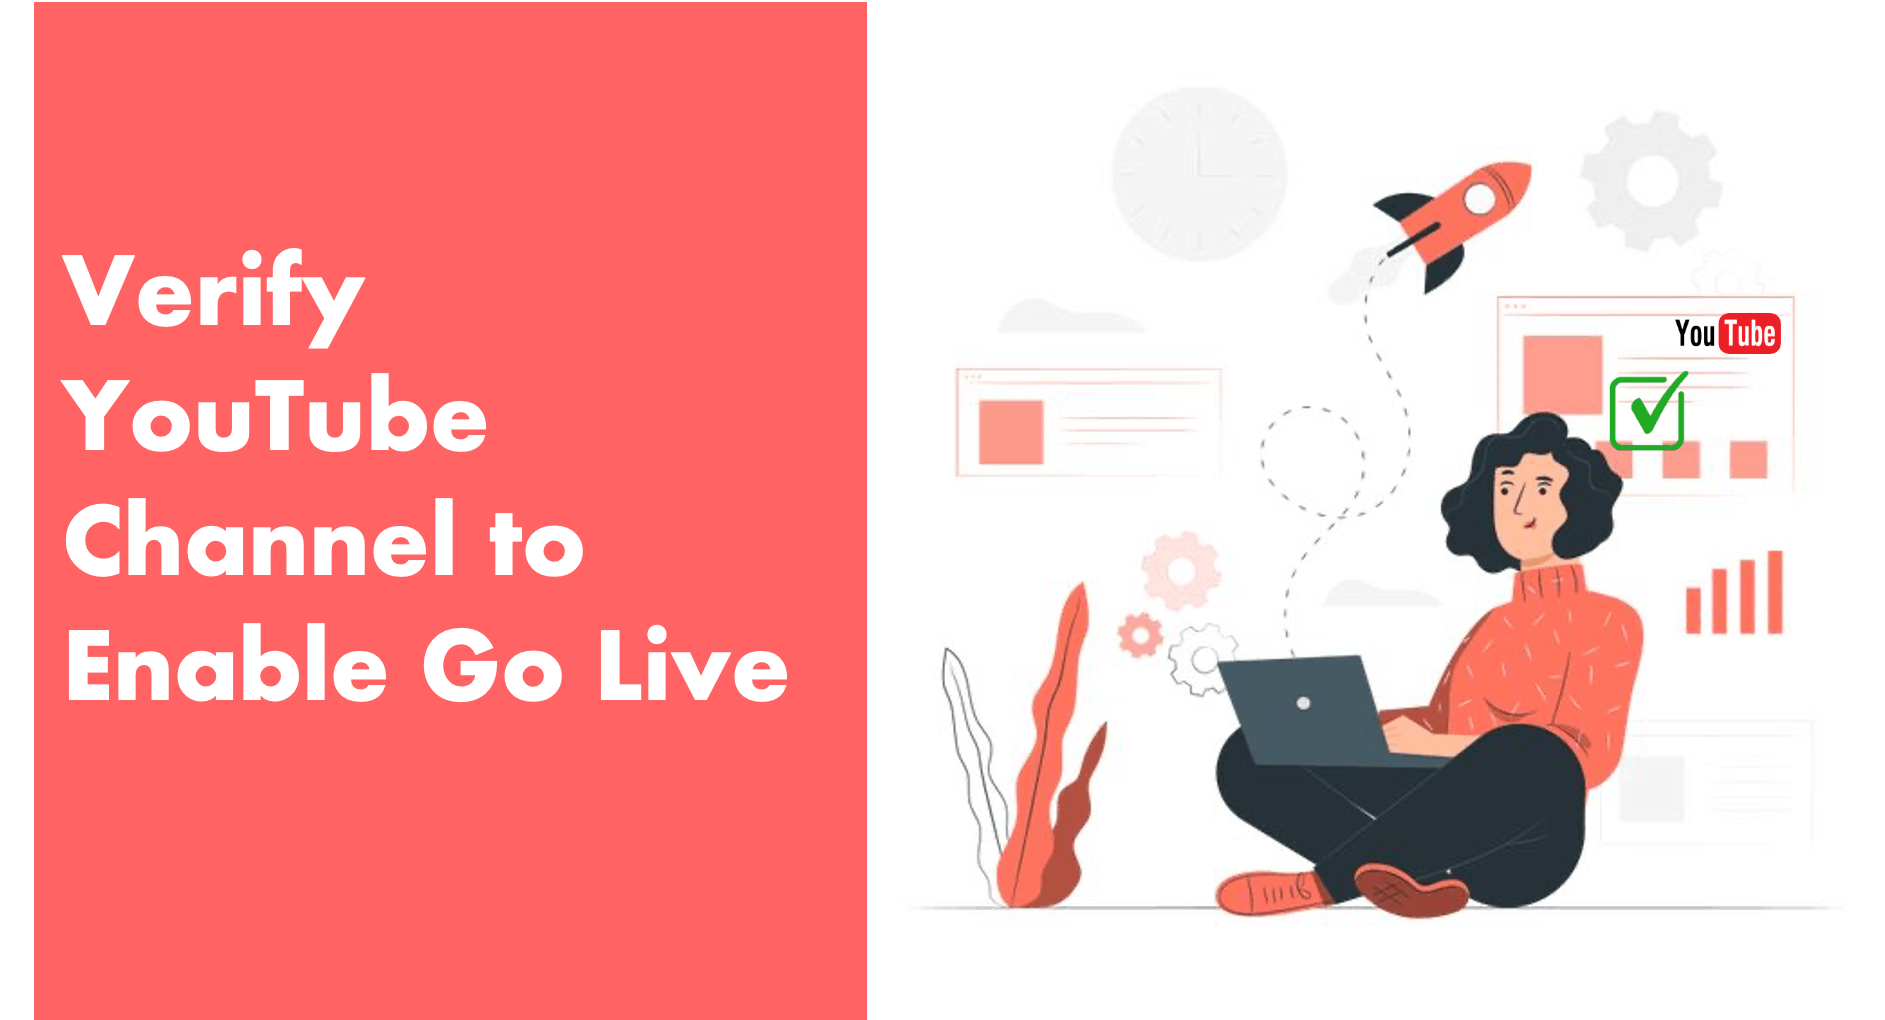 Verify YouTube Channel to Enable Go Live